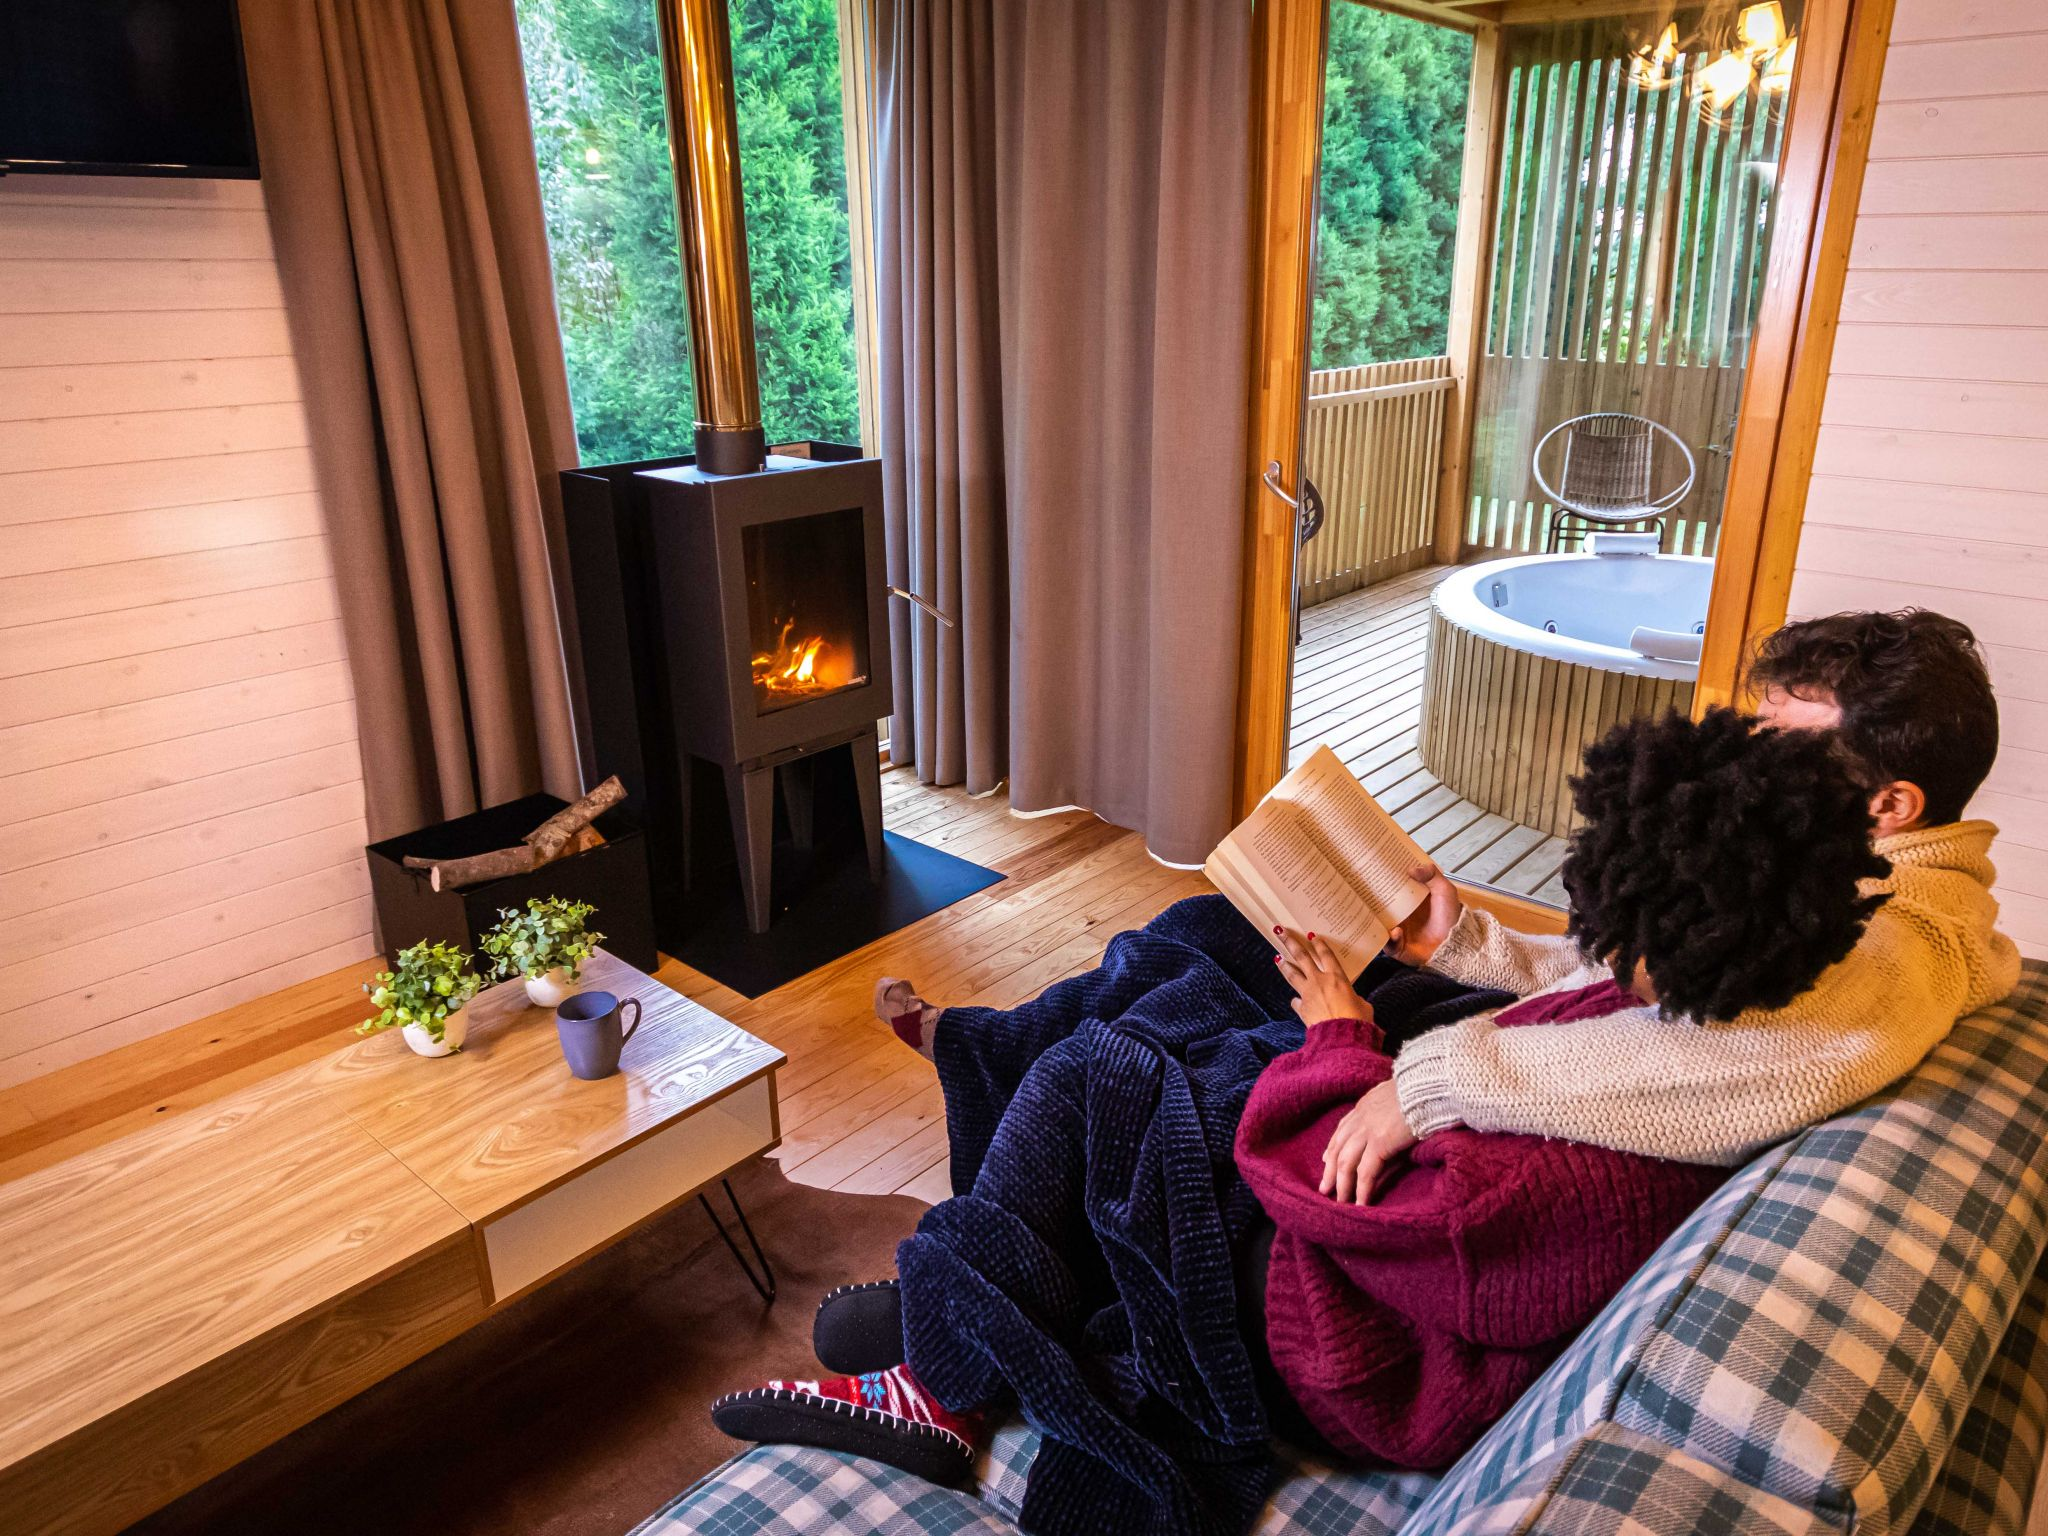 St. Valentine's Day in Vila sen Vento: celebrate love in our little cabins among the trees